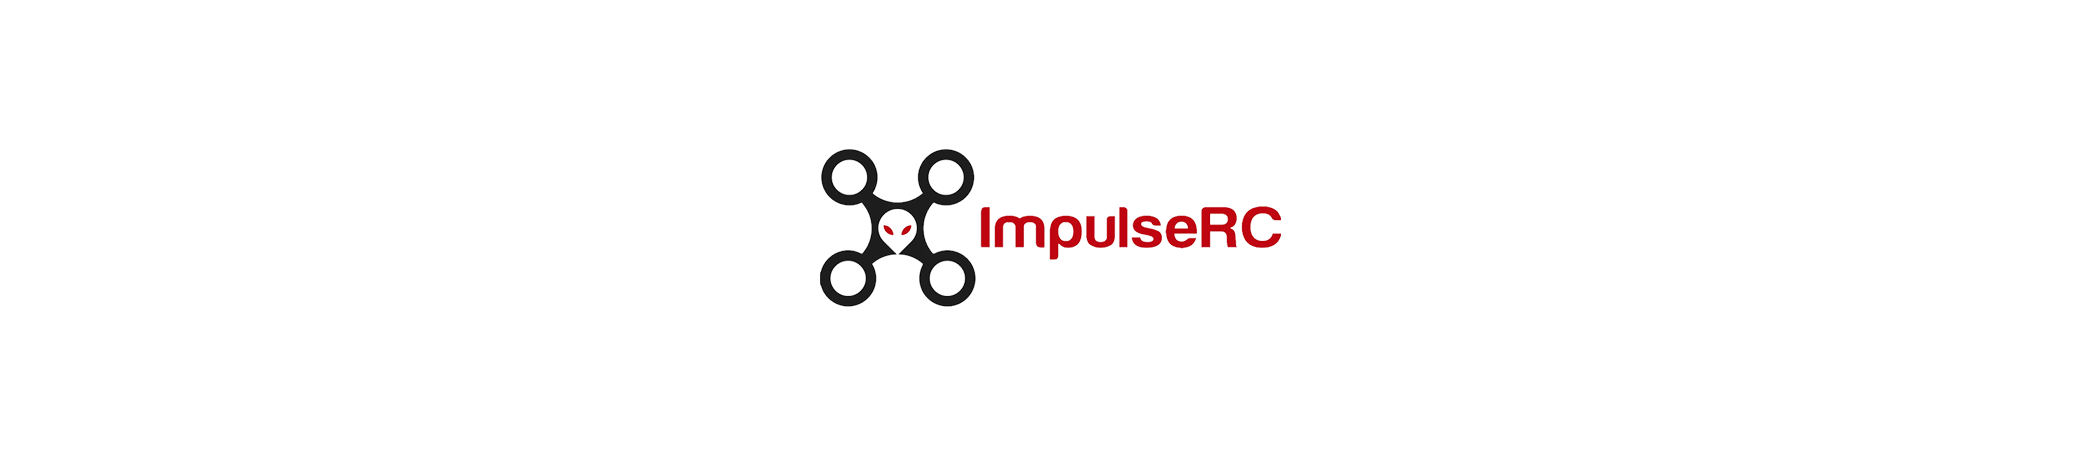 impulserc fpv banner promotion shop description mantisfpv